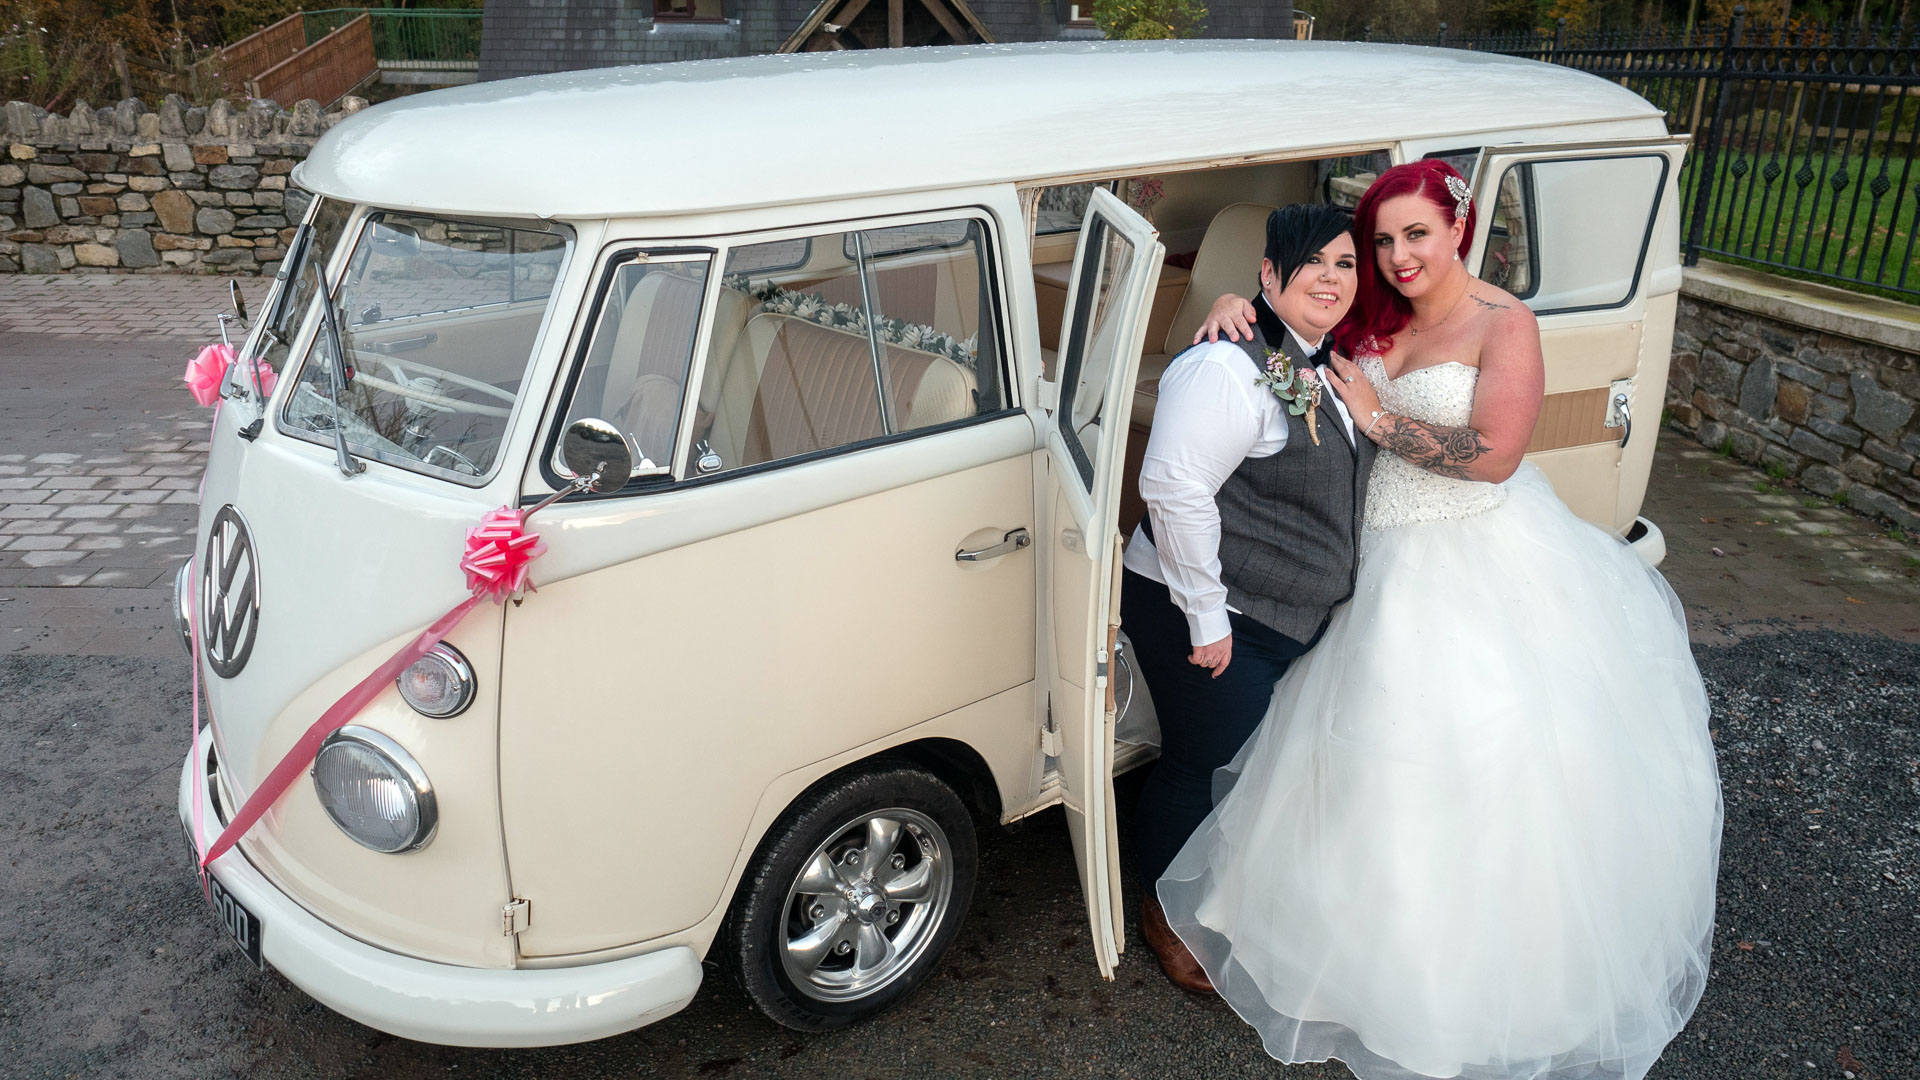 Did you spot the Spiros wedding on S4C?